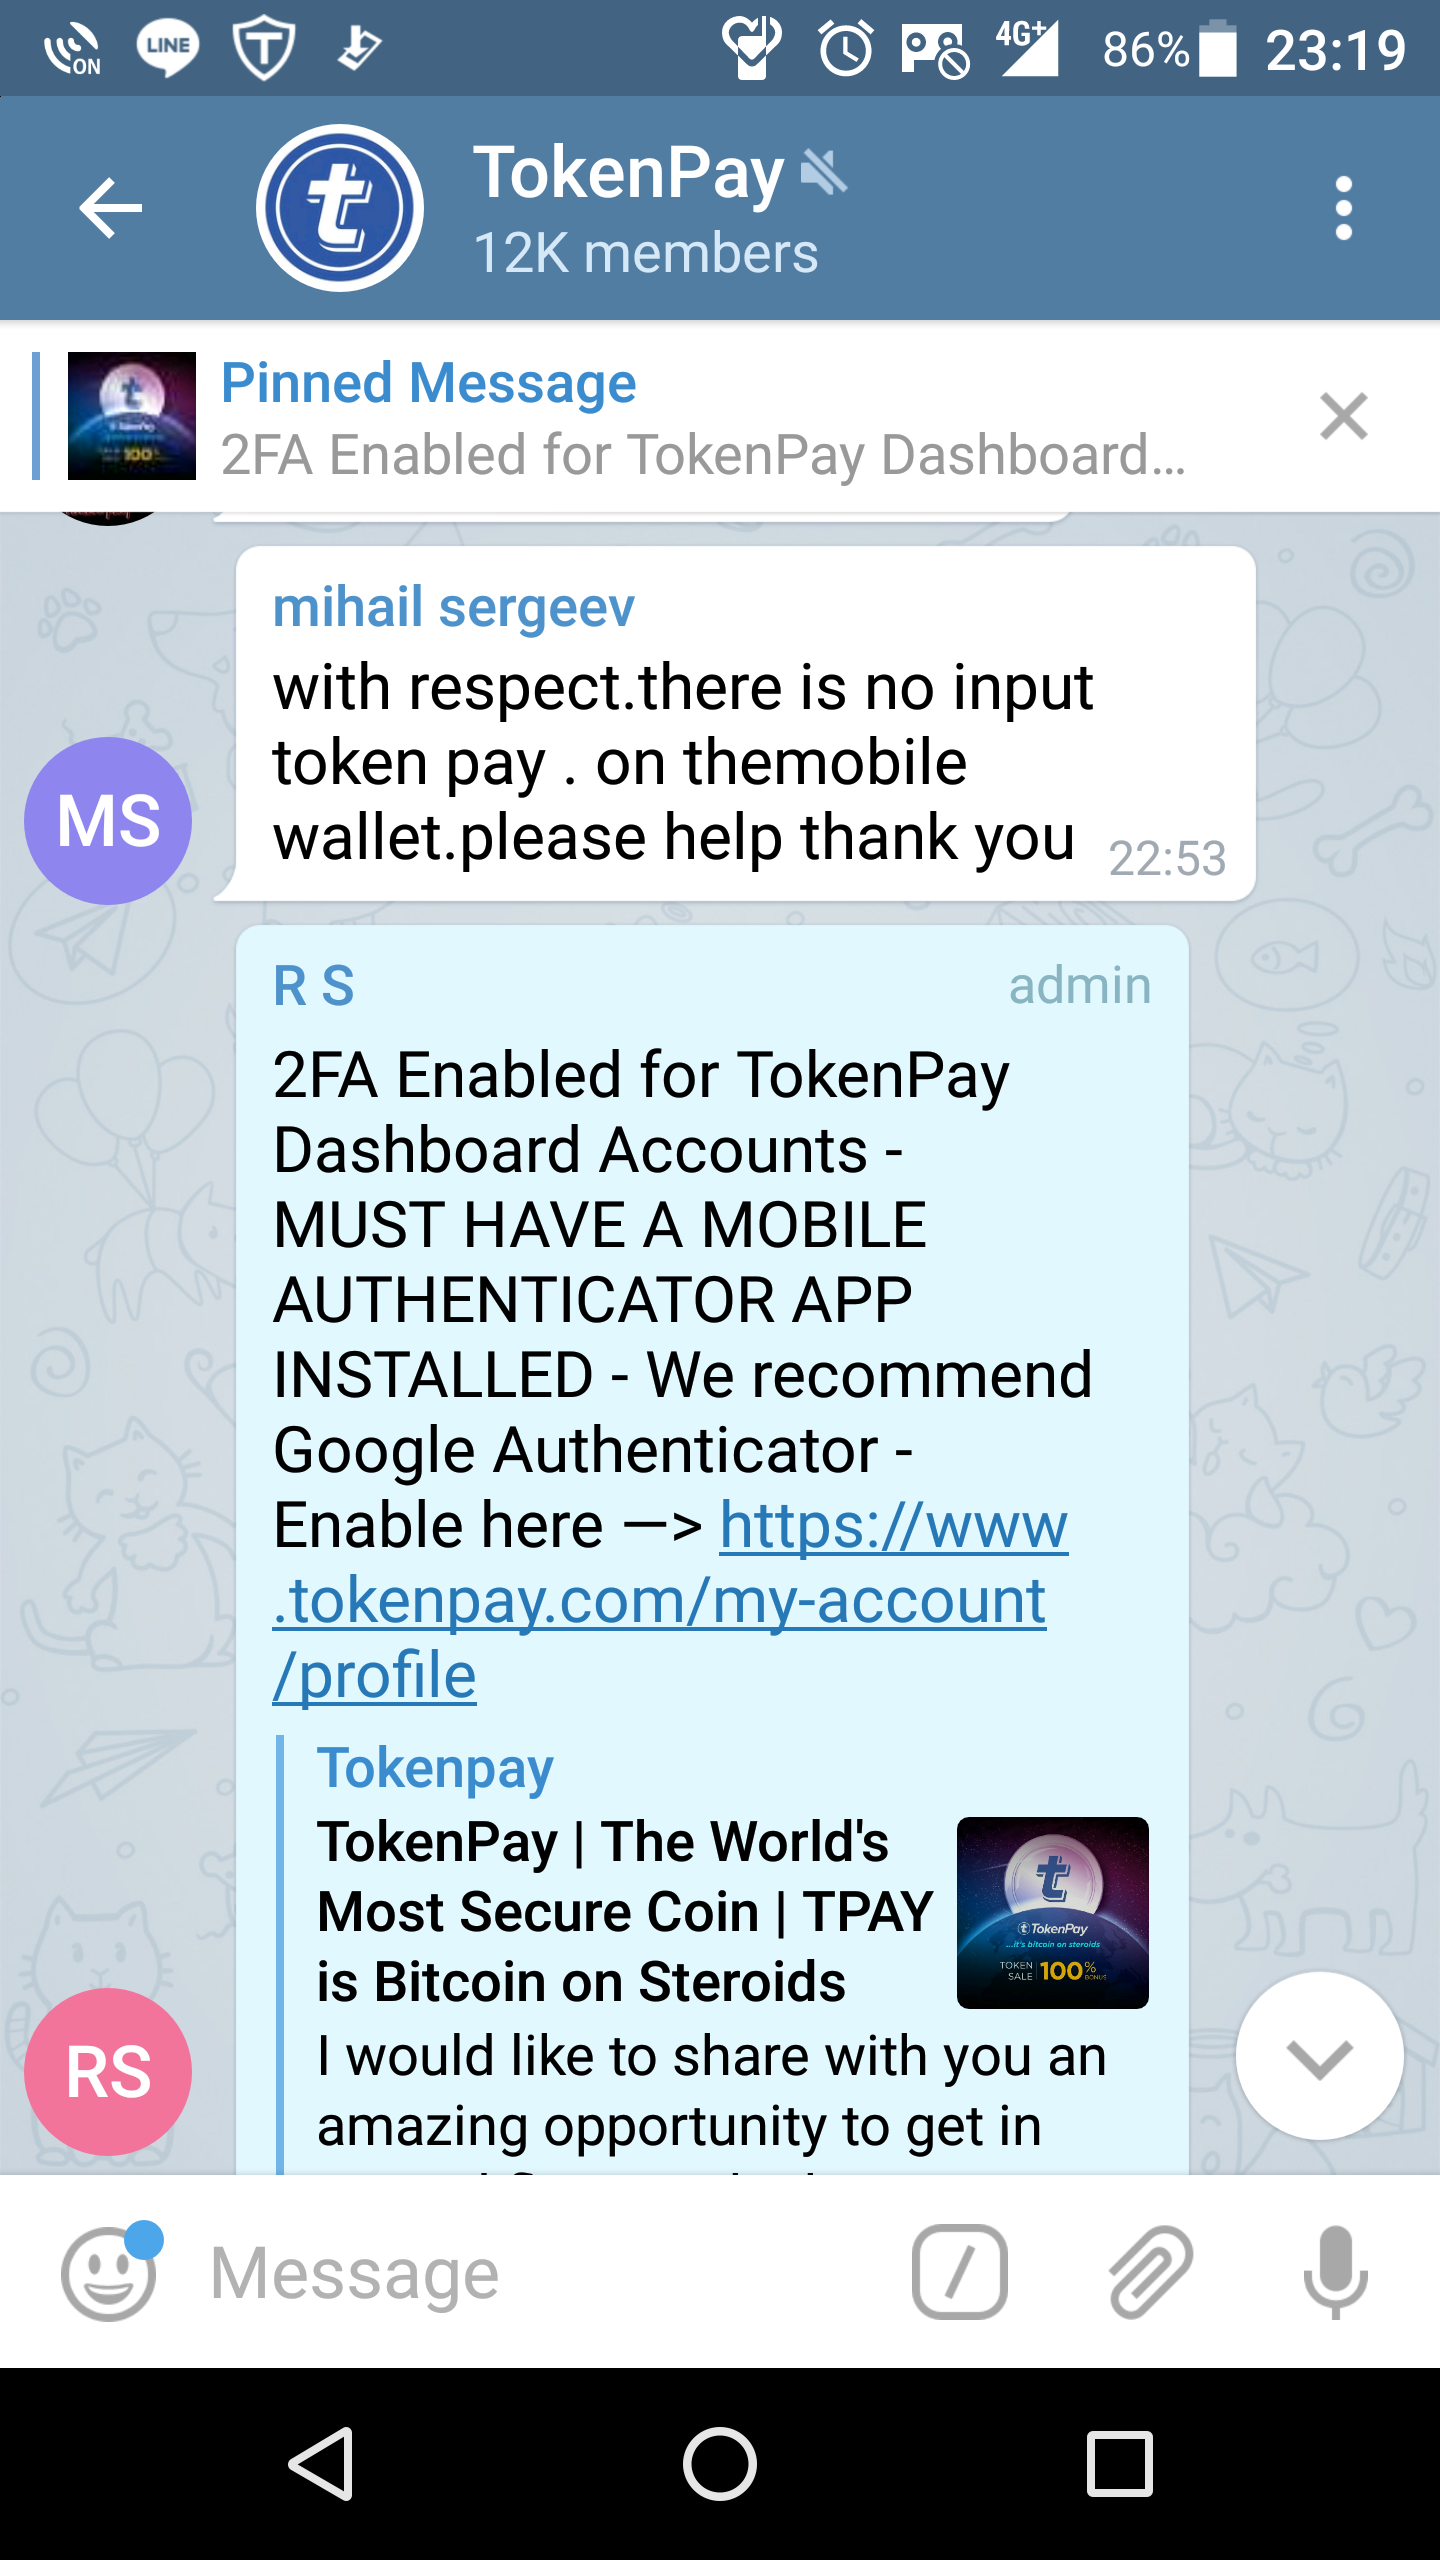 TPAY1